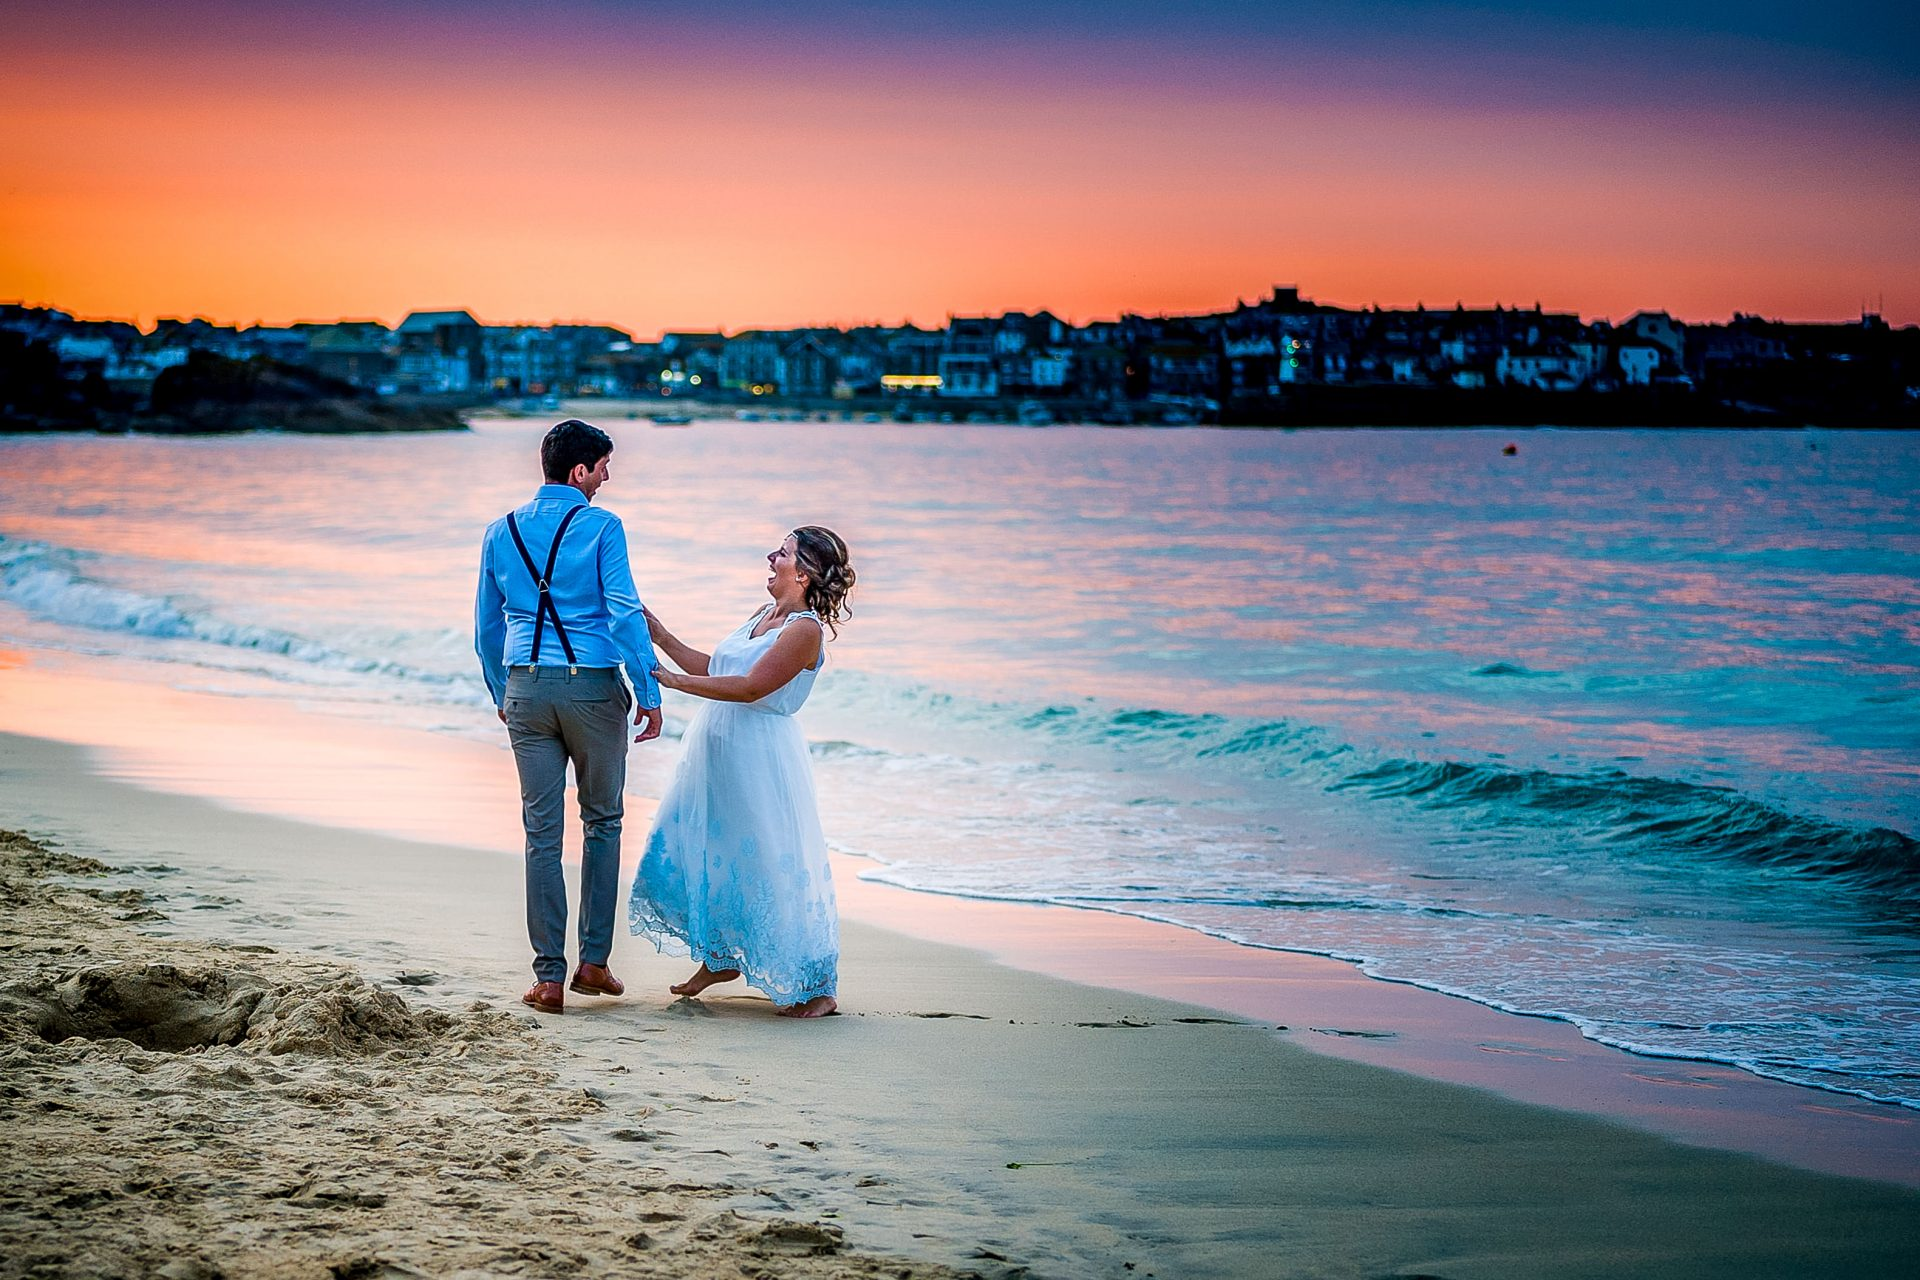 YFFUK Phil Endicott Pinto Porthminster Point Tregenna Castle St Ives bride laughing at groom walking along the beach sunset